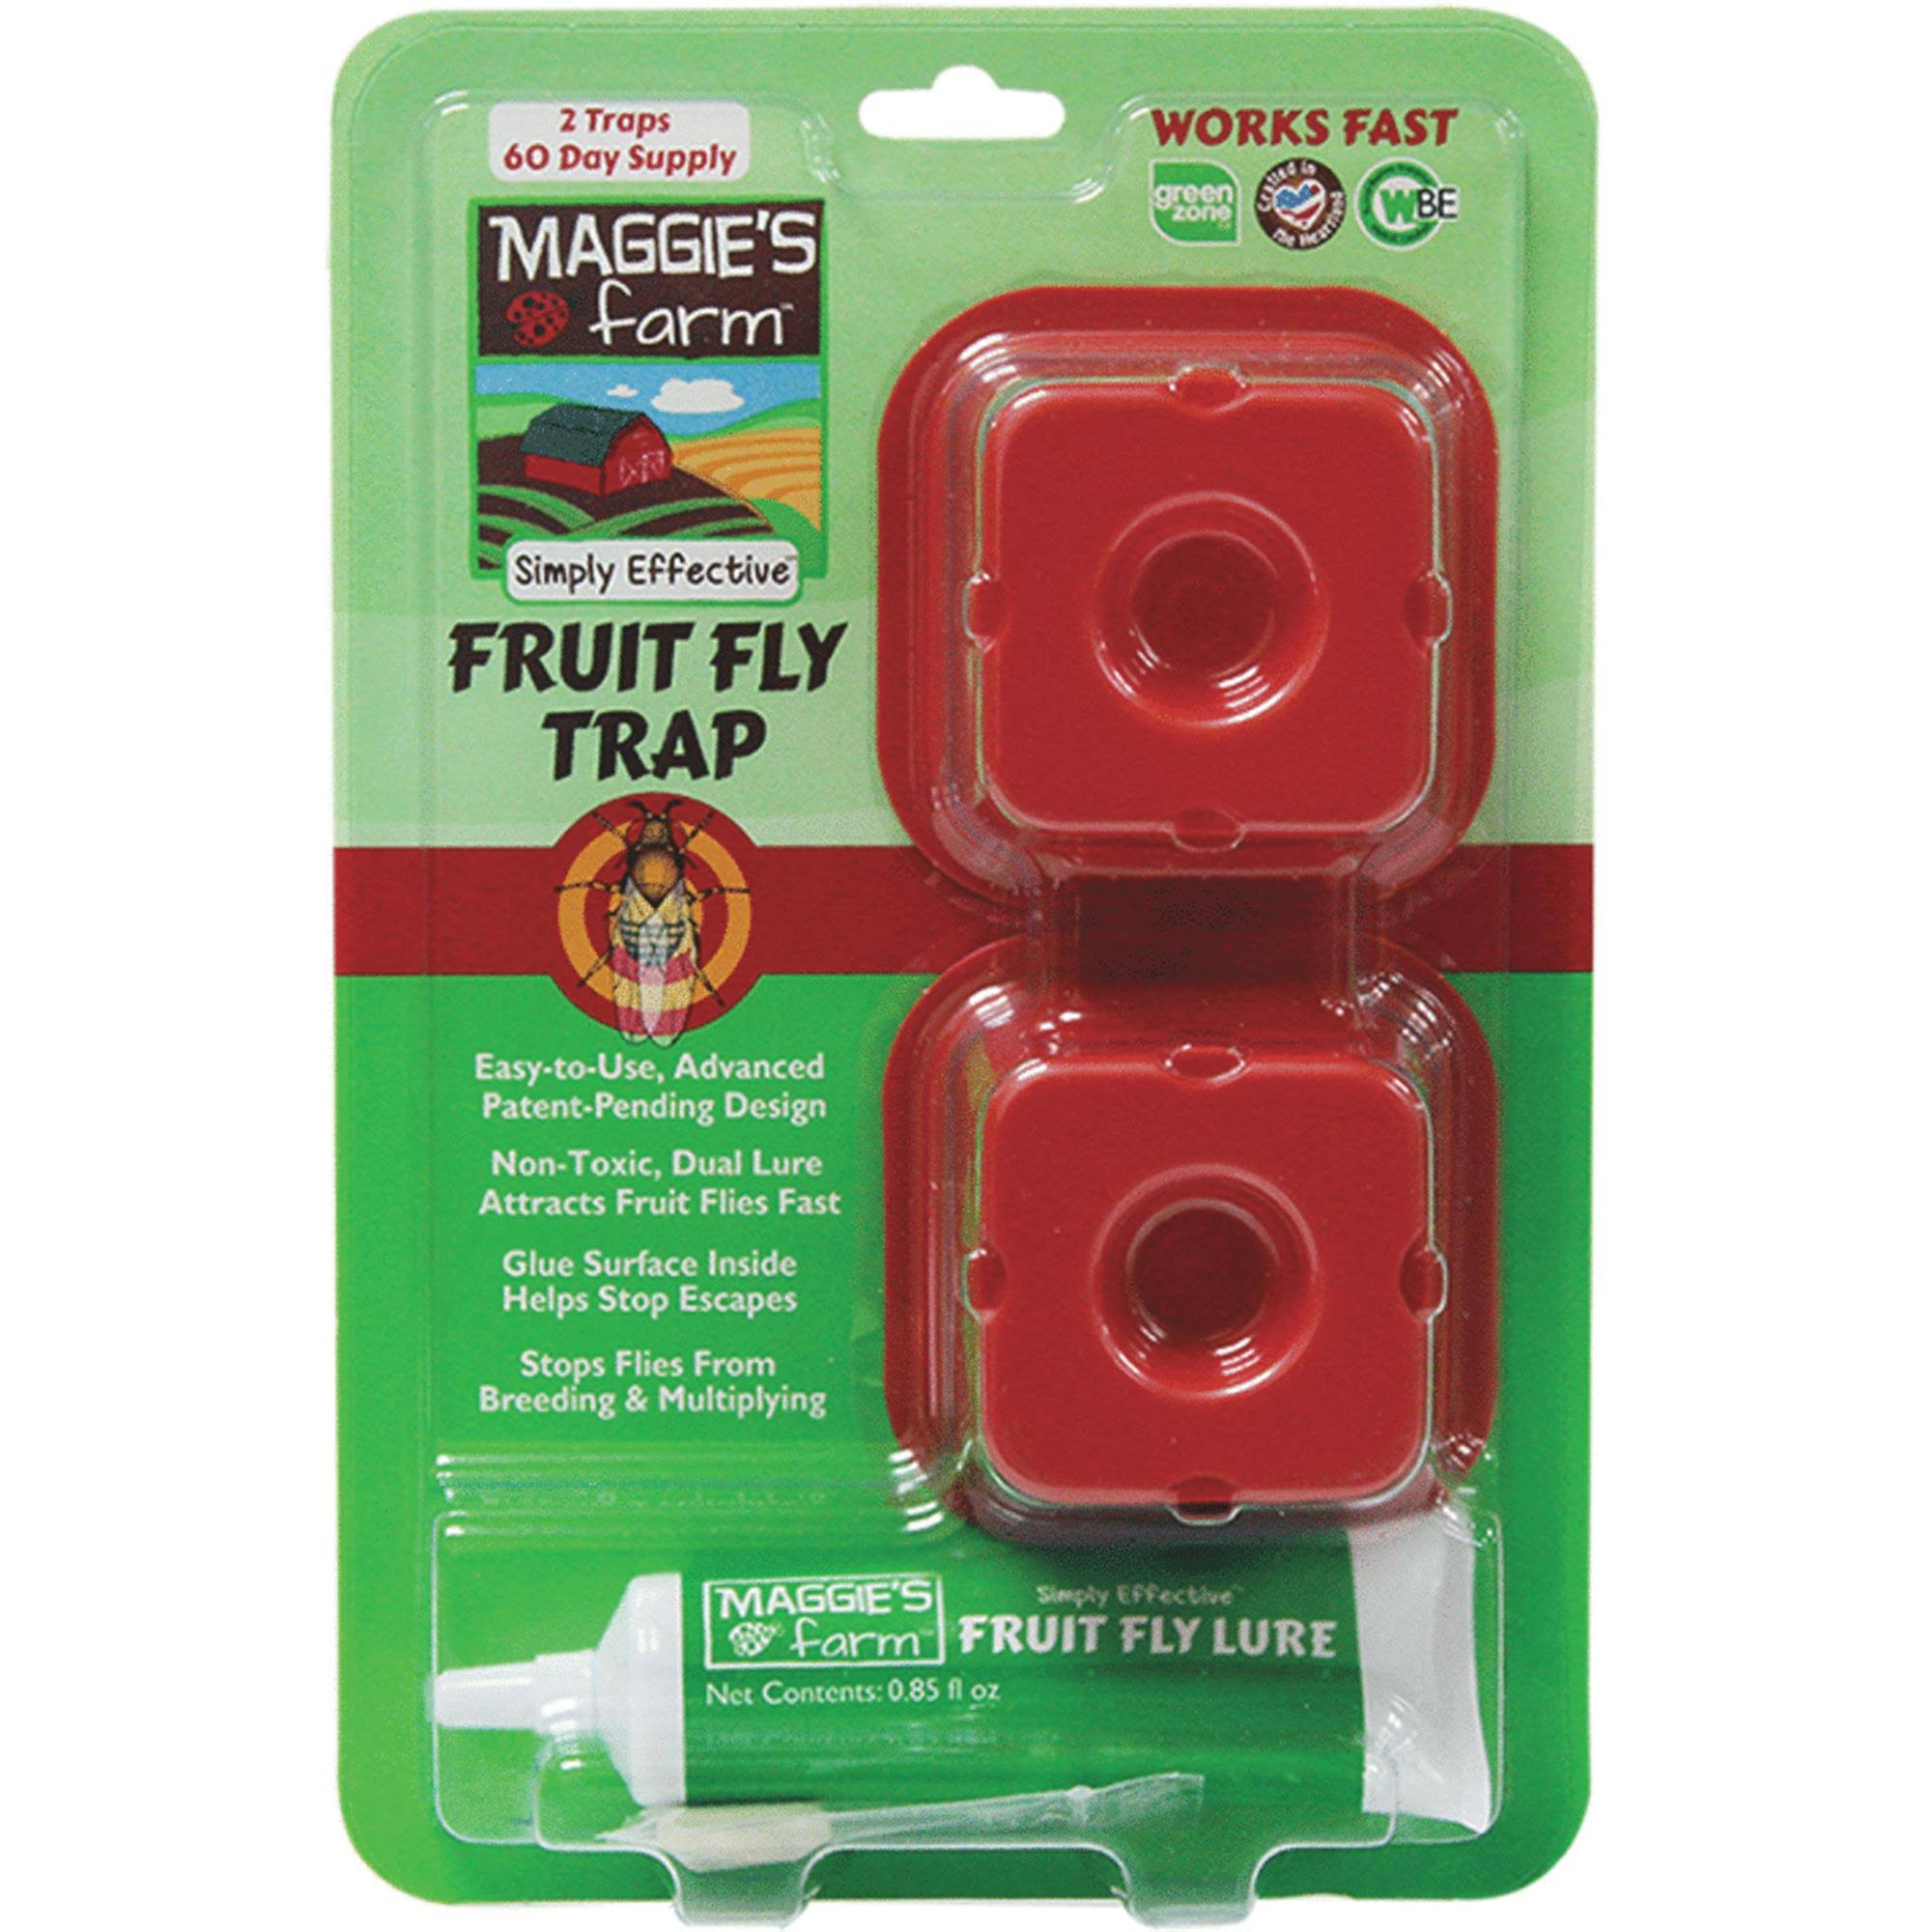 Maggie's Farm Fruit Fly Trap MFFT002